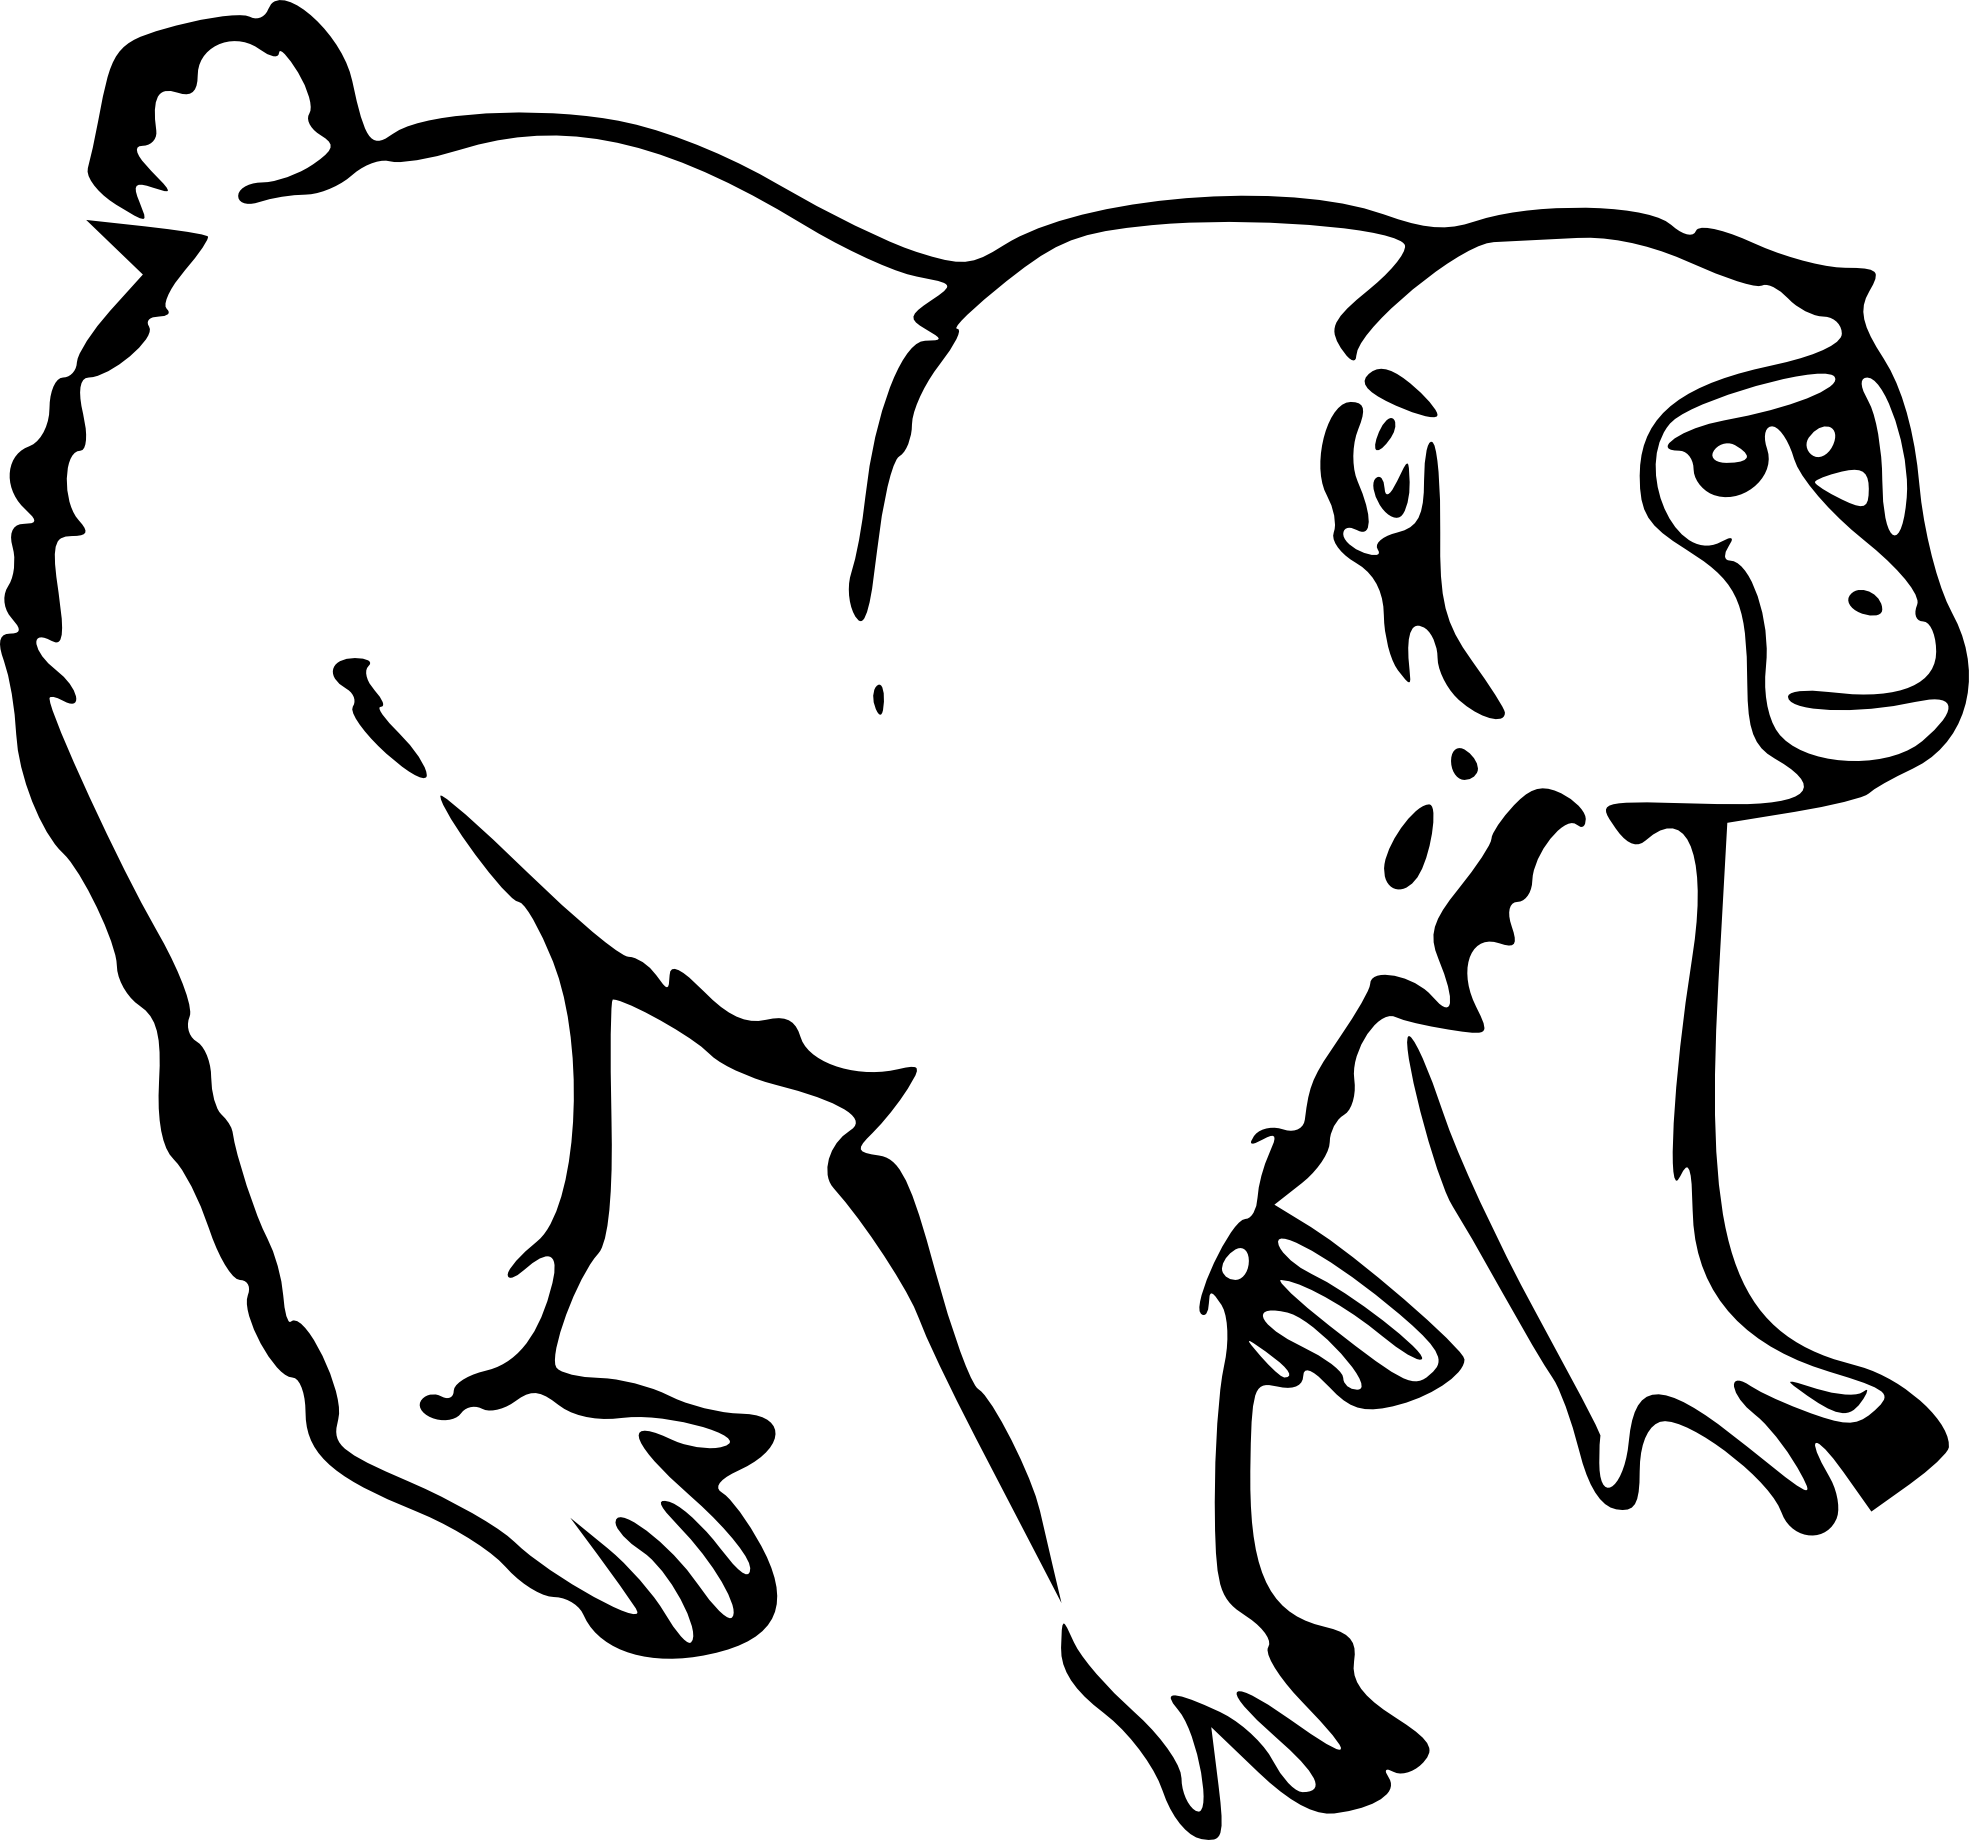 Monkey clipart pencil. Png black and white